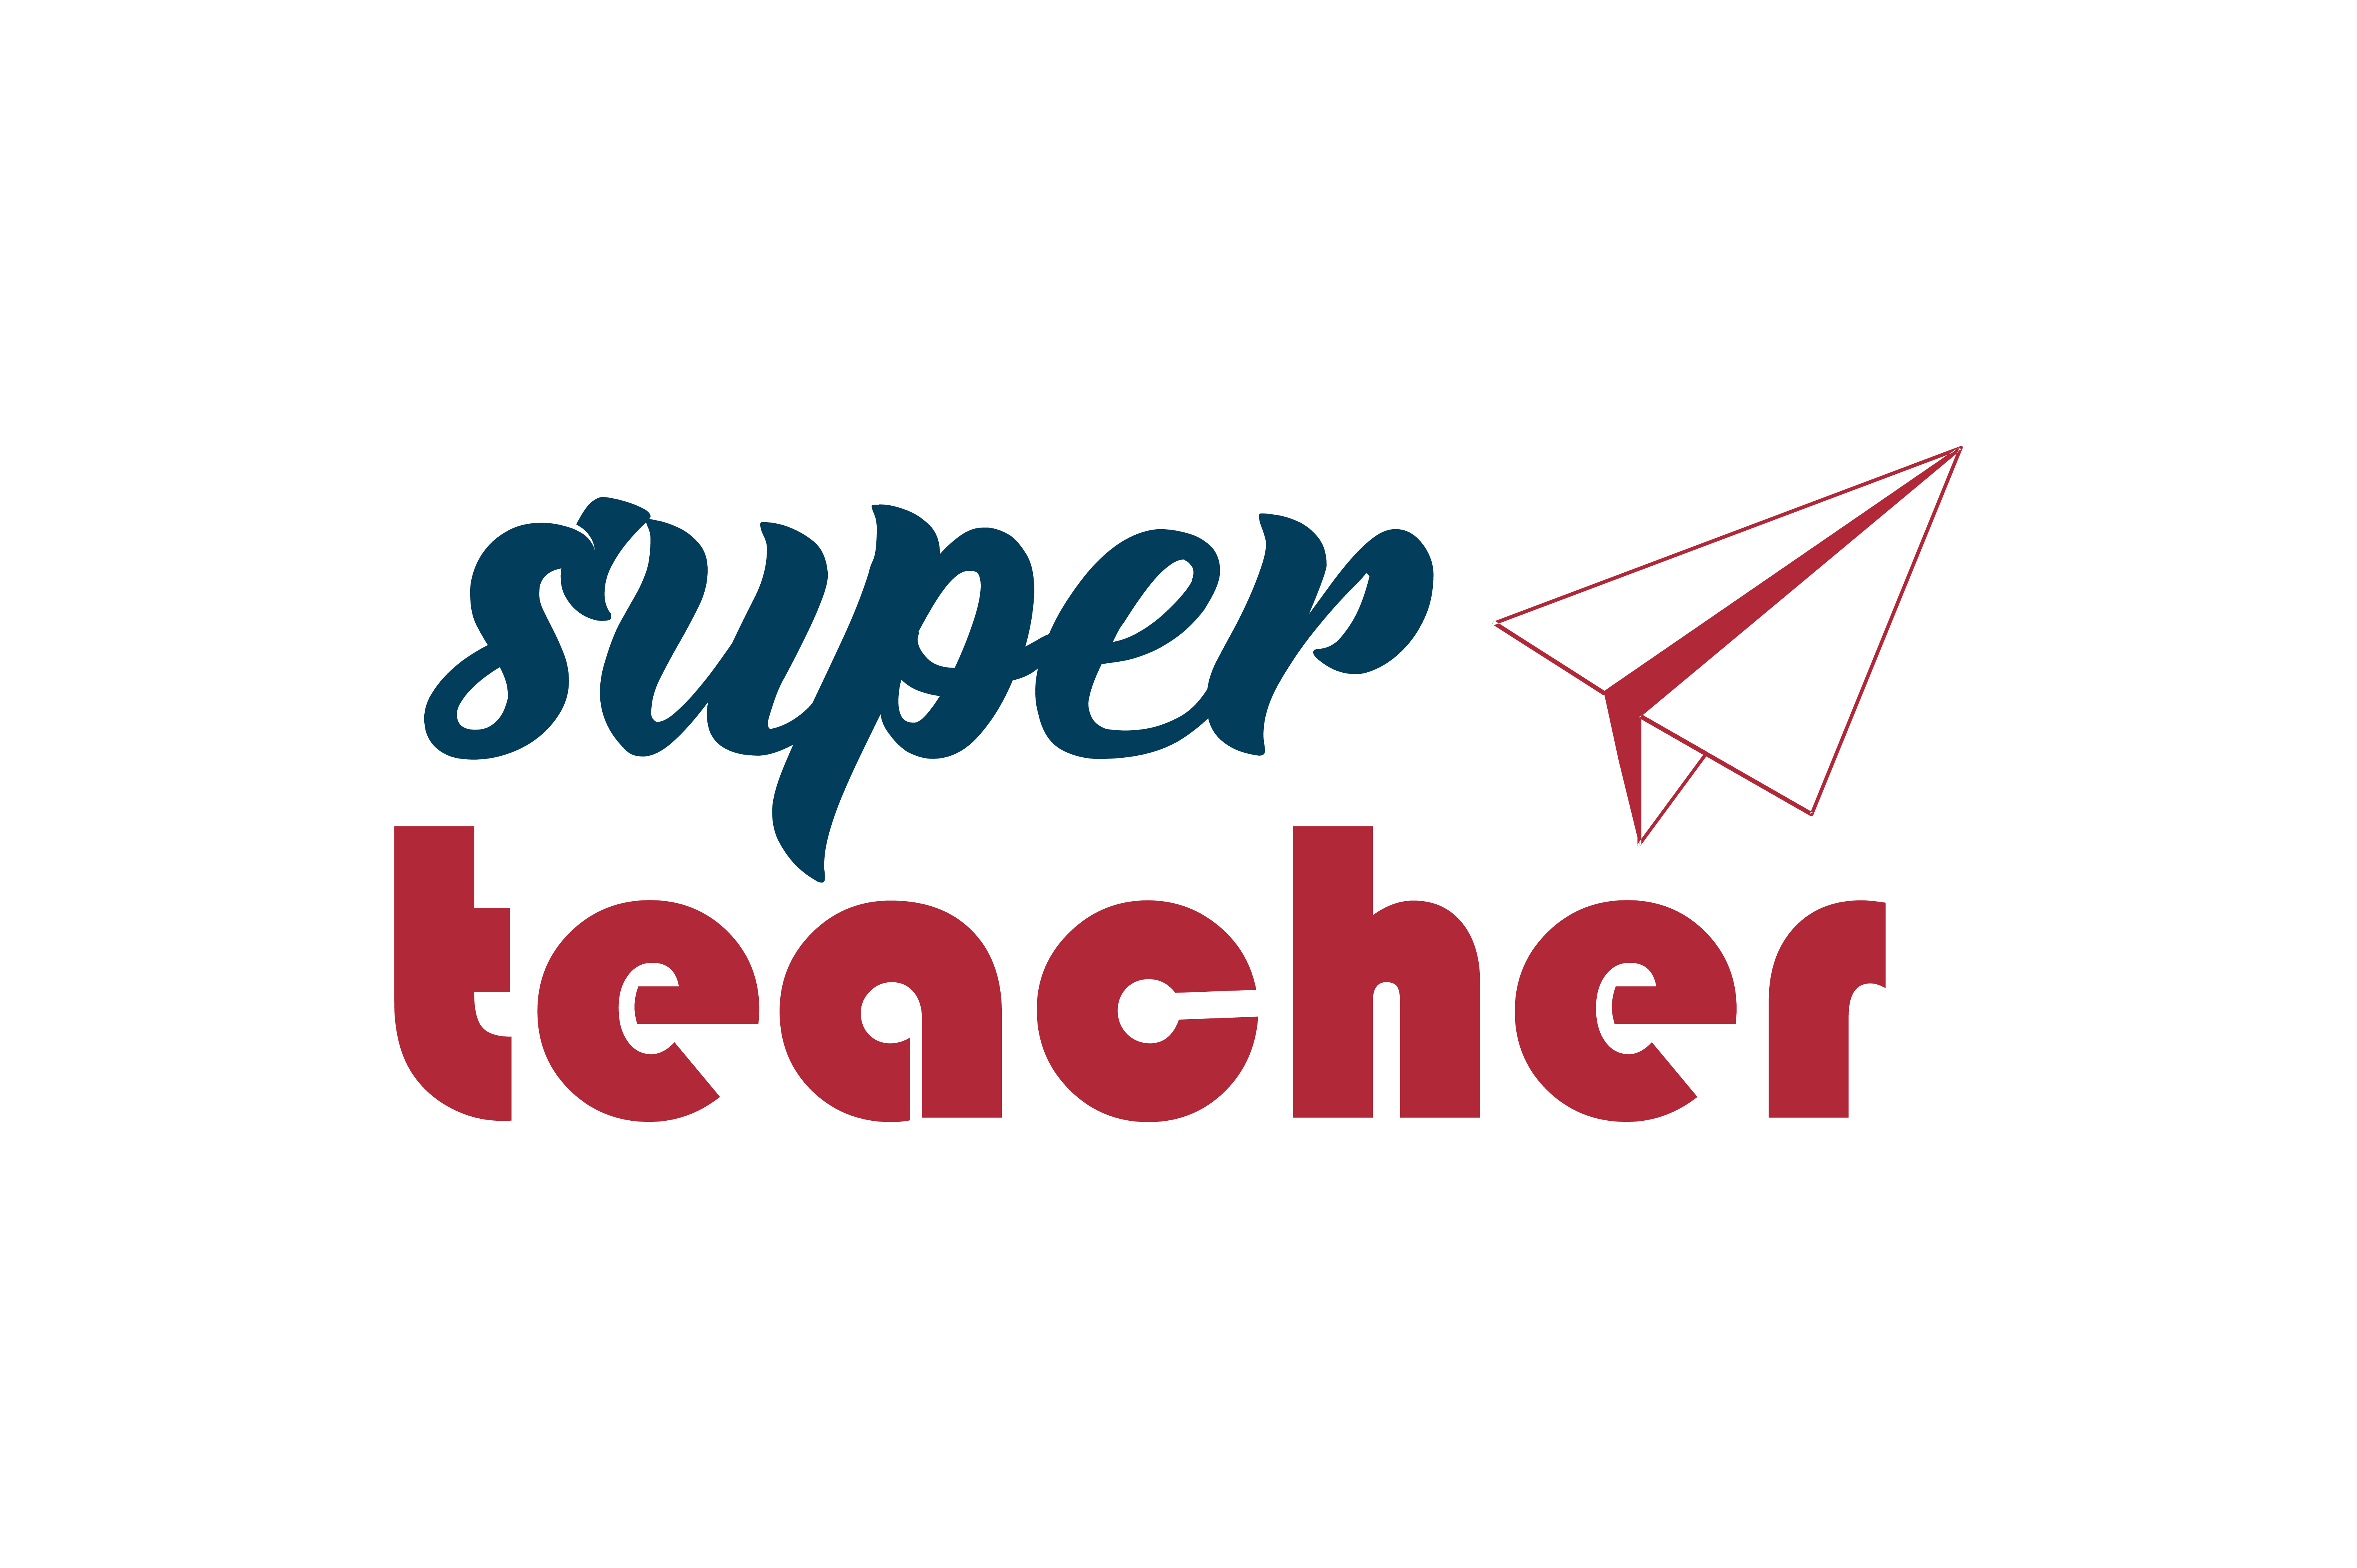 Download Free Super Teacher Quote Svg Cut Graphic By Thelucky Creative Fabrica for Cricut Explore, Silhouette and other cutting machines.